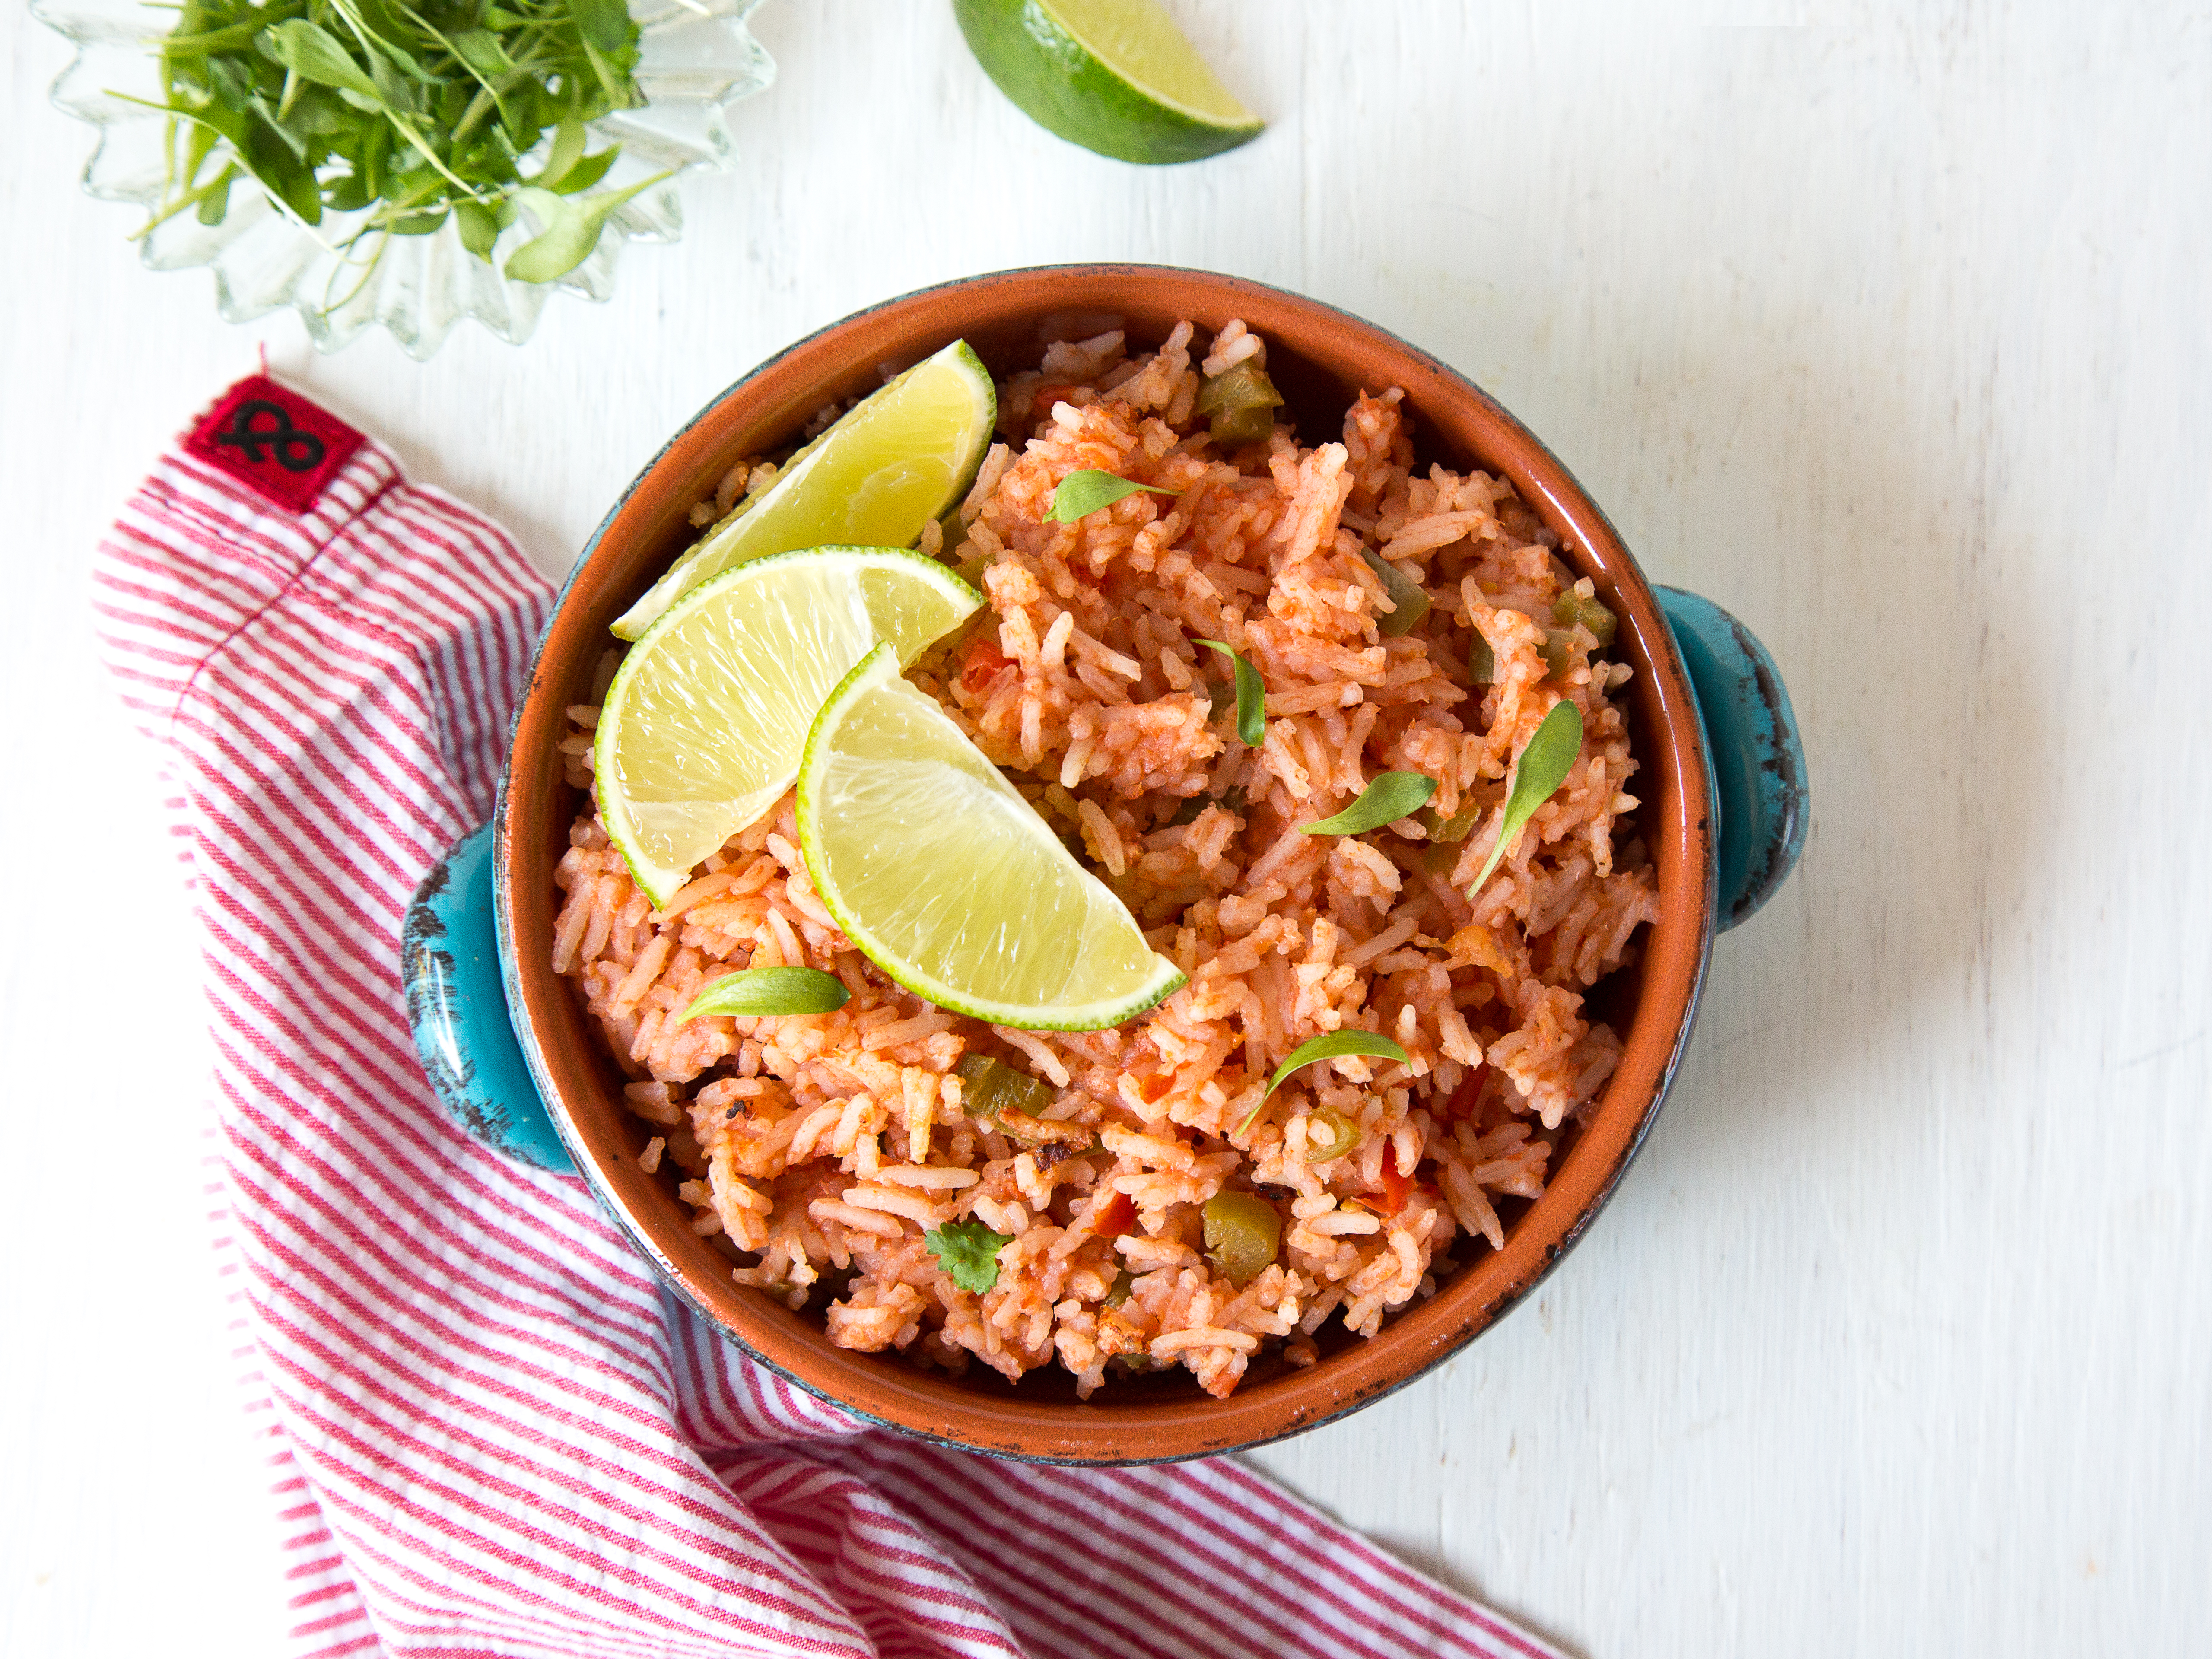 mexican food recipes and cuisine ideas - mexican.food